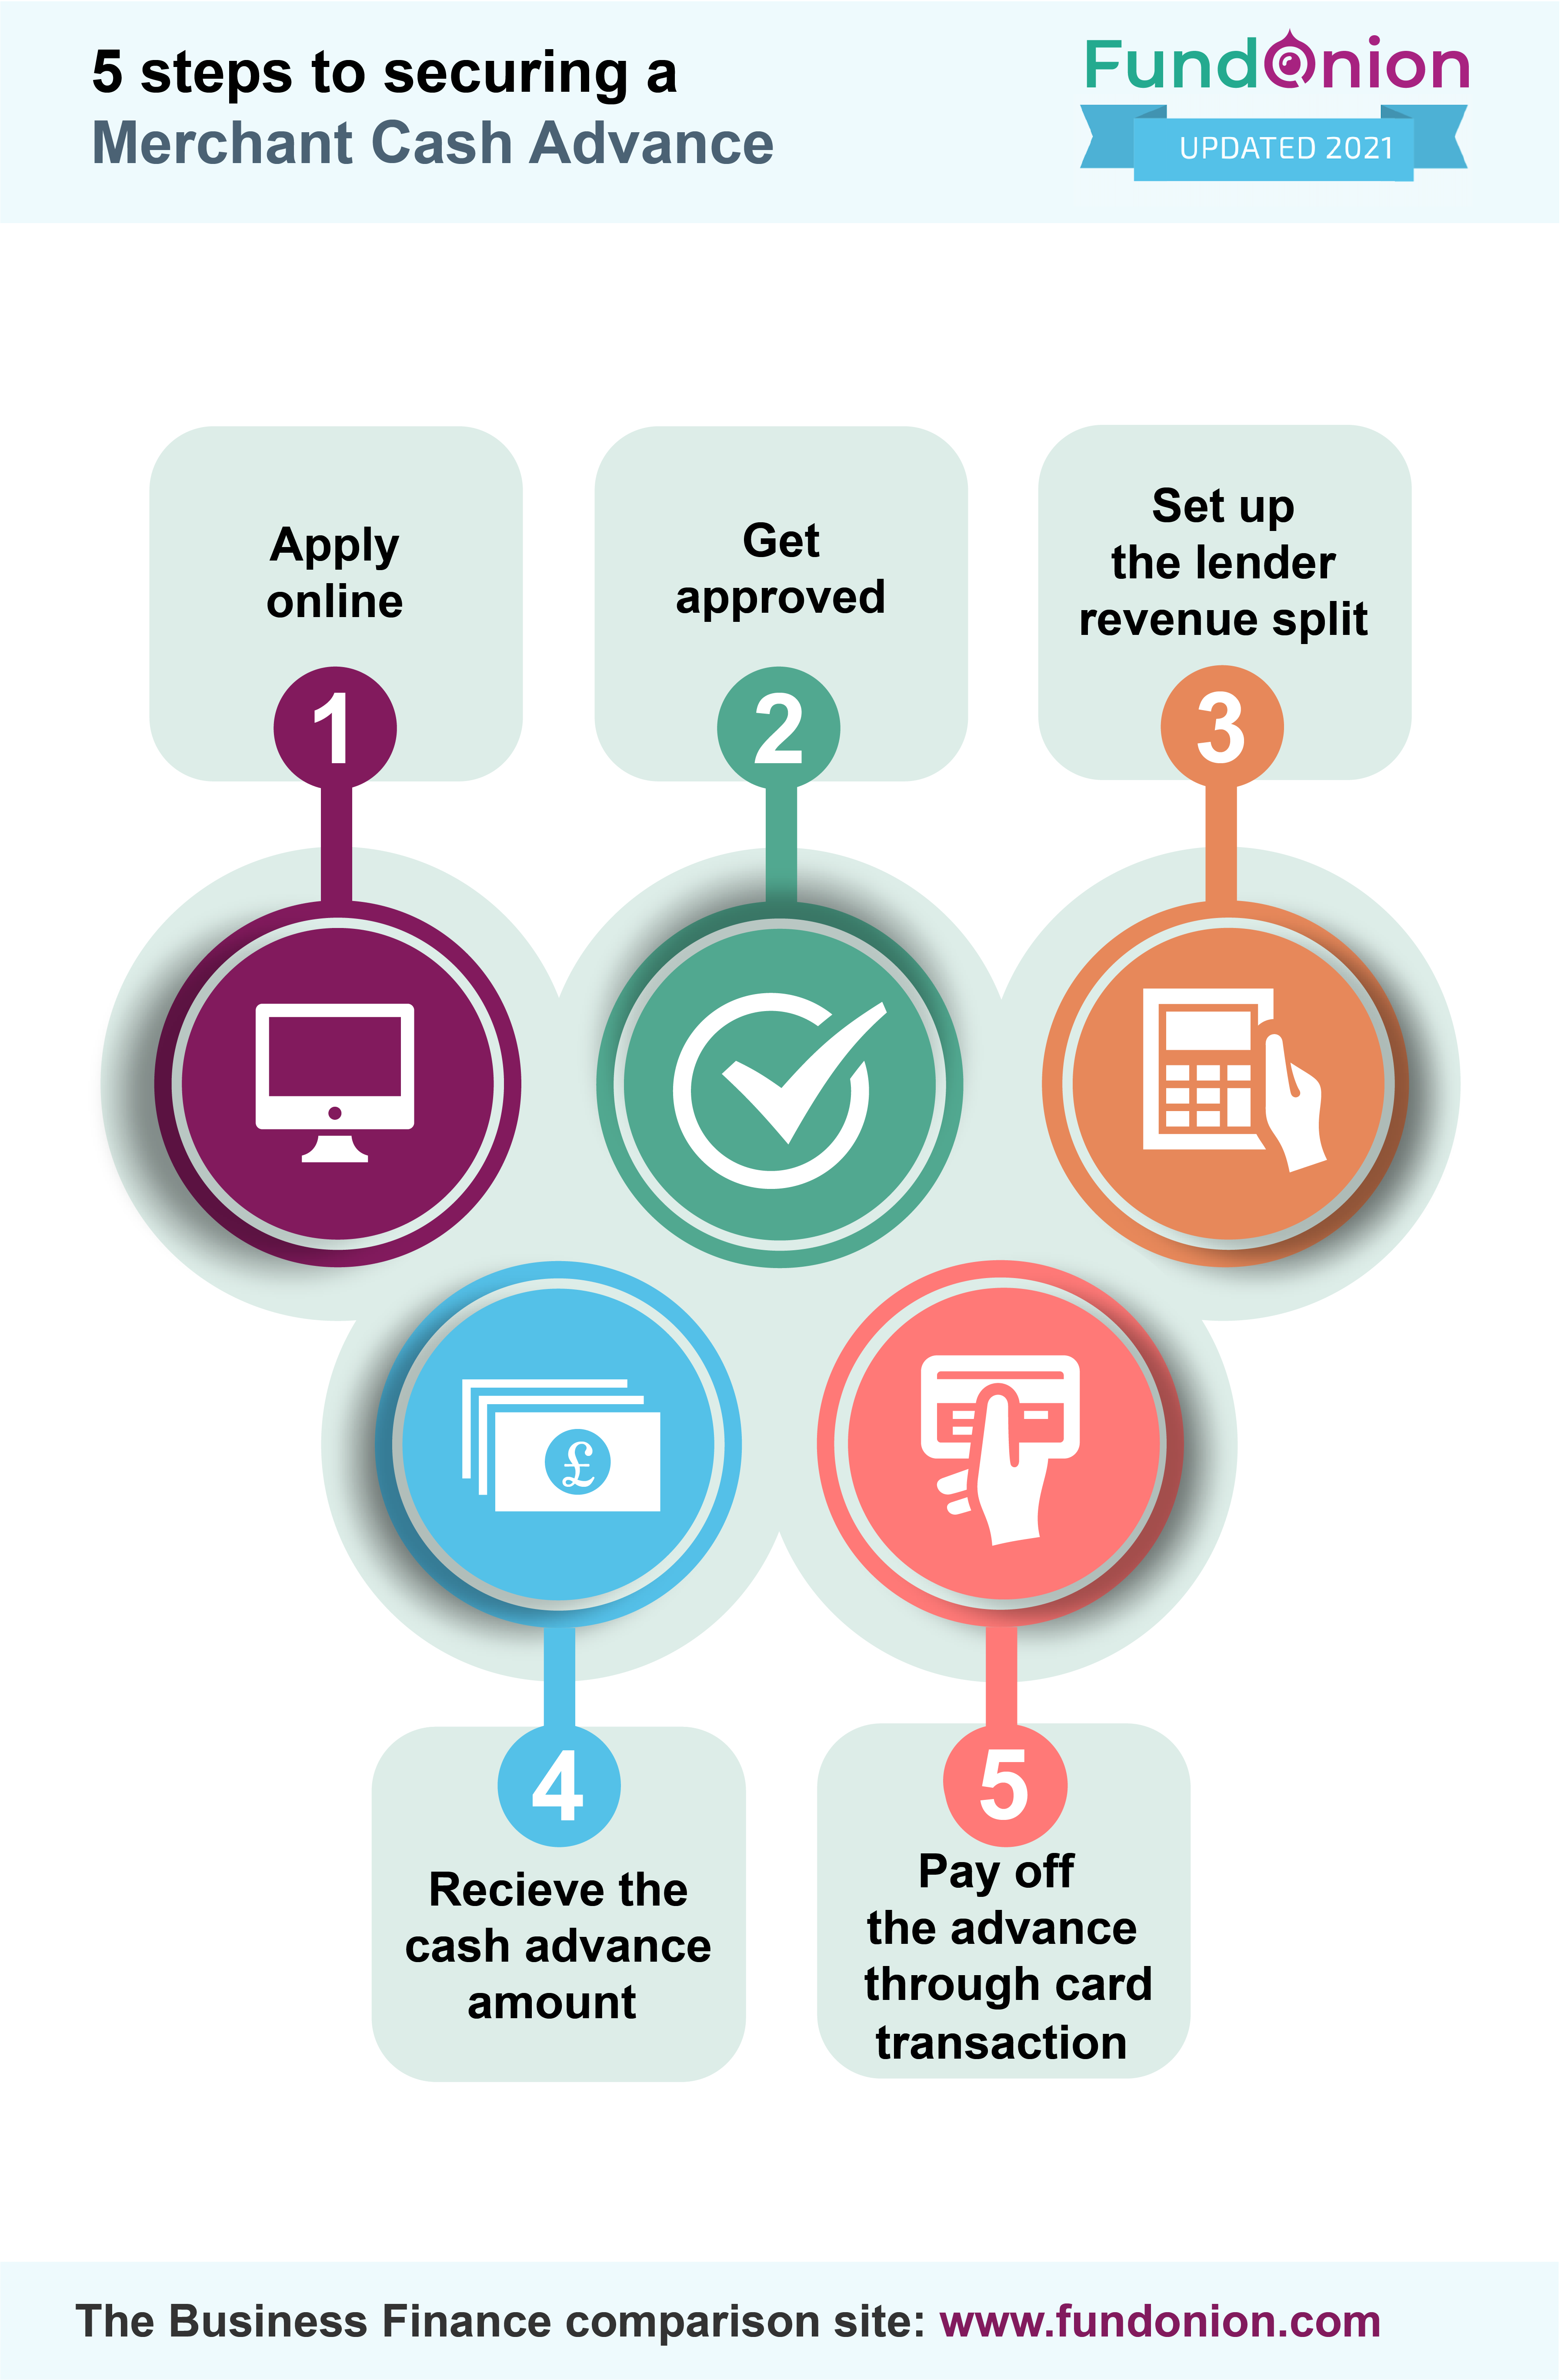 5 Steps To Securing a Merchant Cash Advance_Infographic